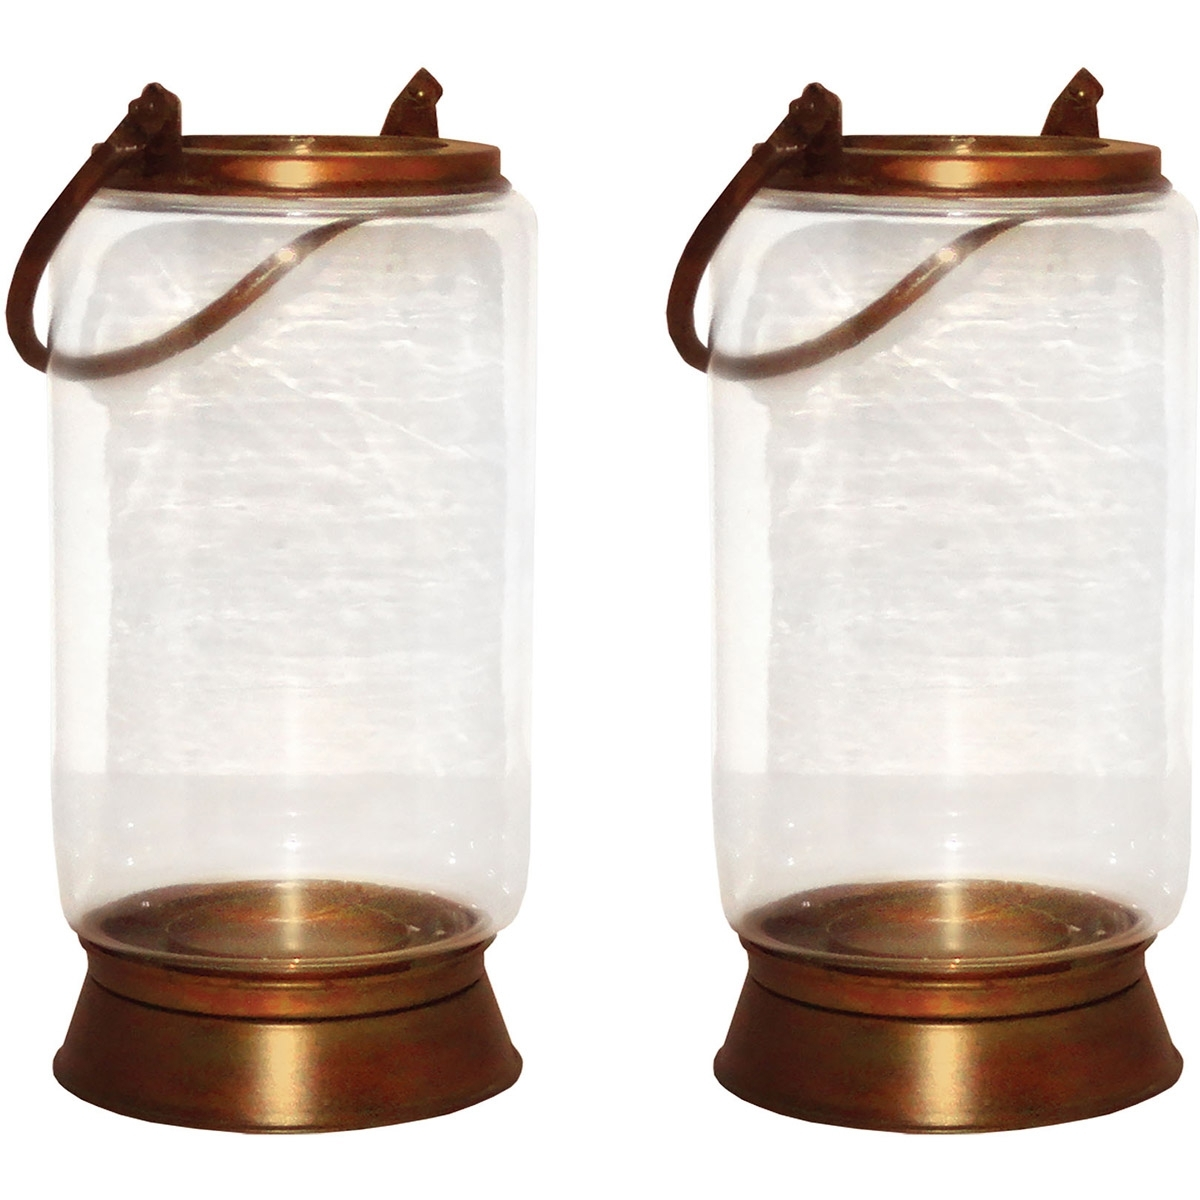 Pomeroy 401329/s2 Taos 10 X 6 Inch Burned Copper Outdoor Lanterns Intended For Current Copper Outdoor Lanterns (Gallery 20 of 20)